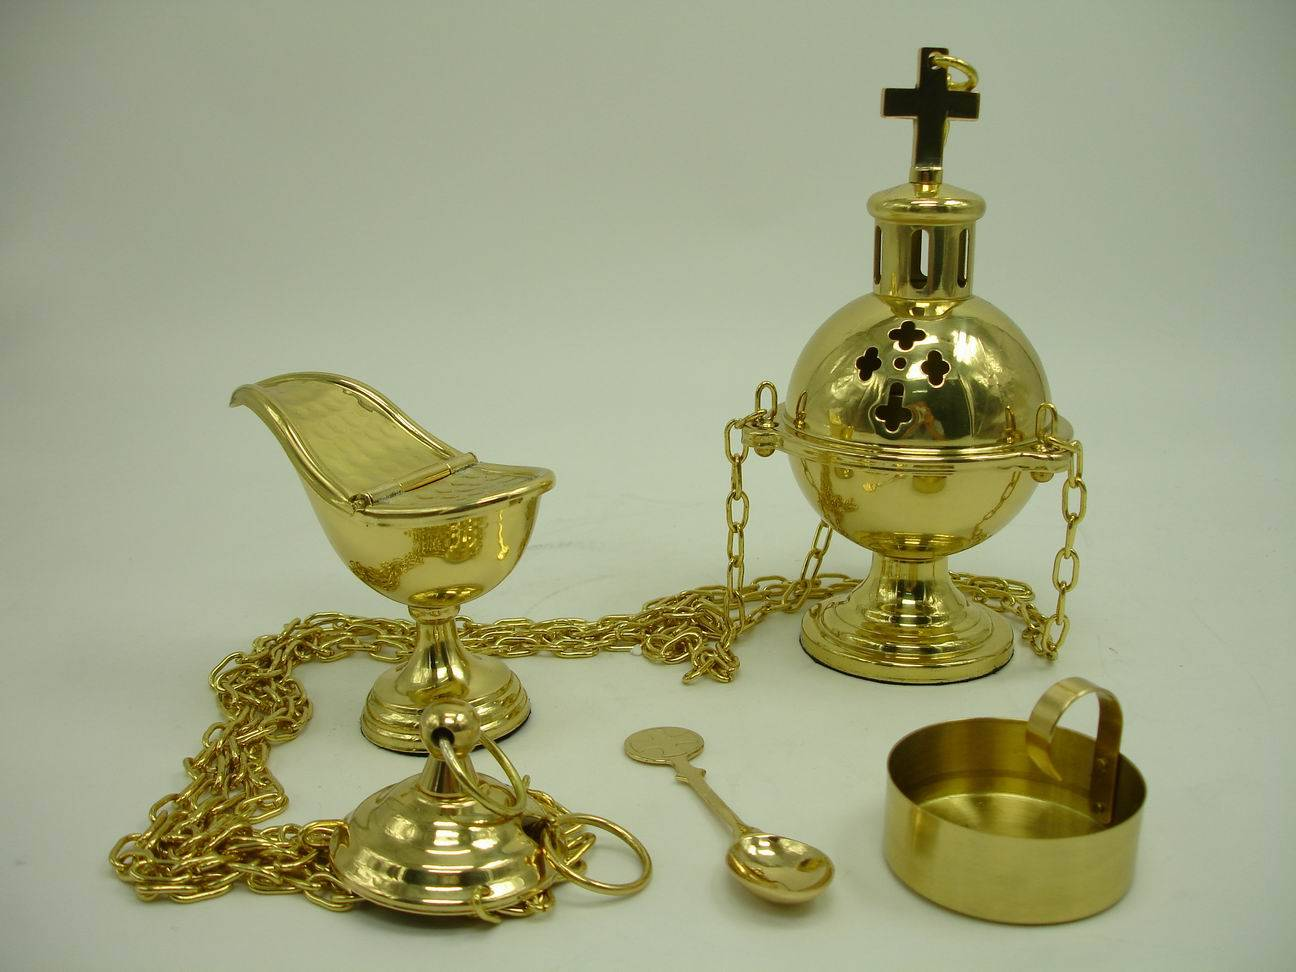 100% guaranteed high quality brass censer, perfect church articles #M3-1